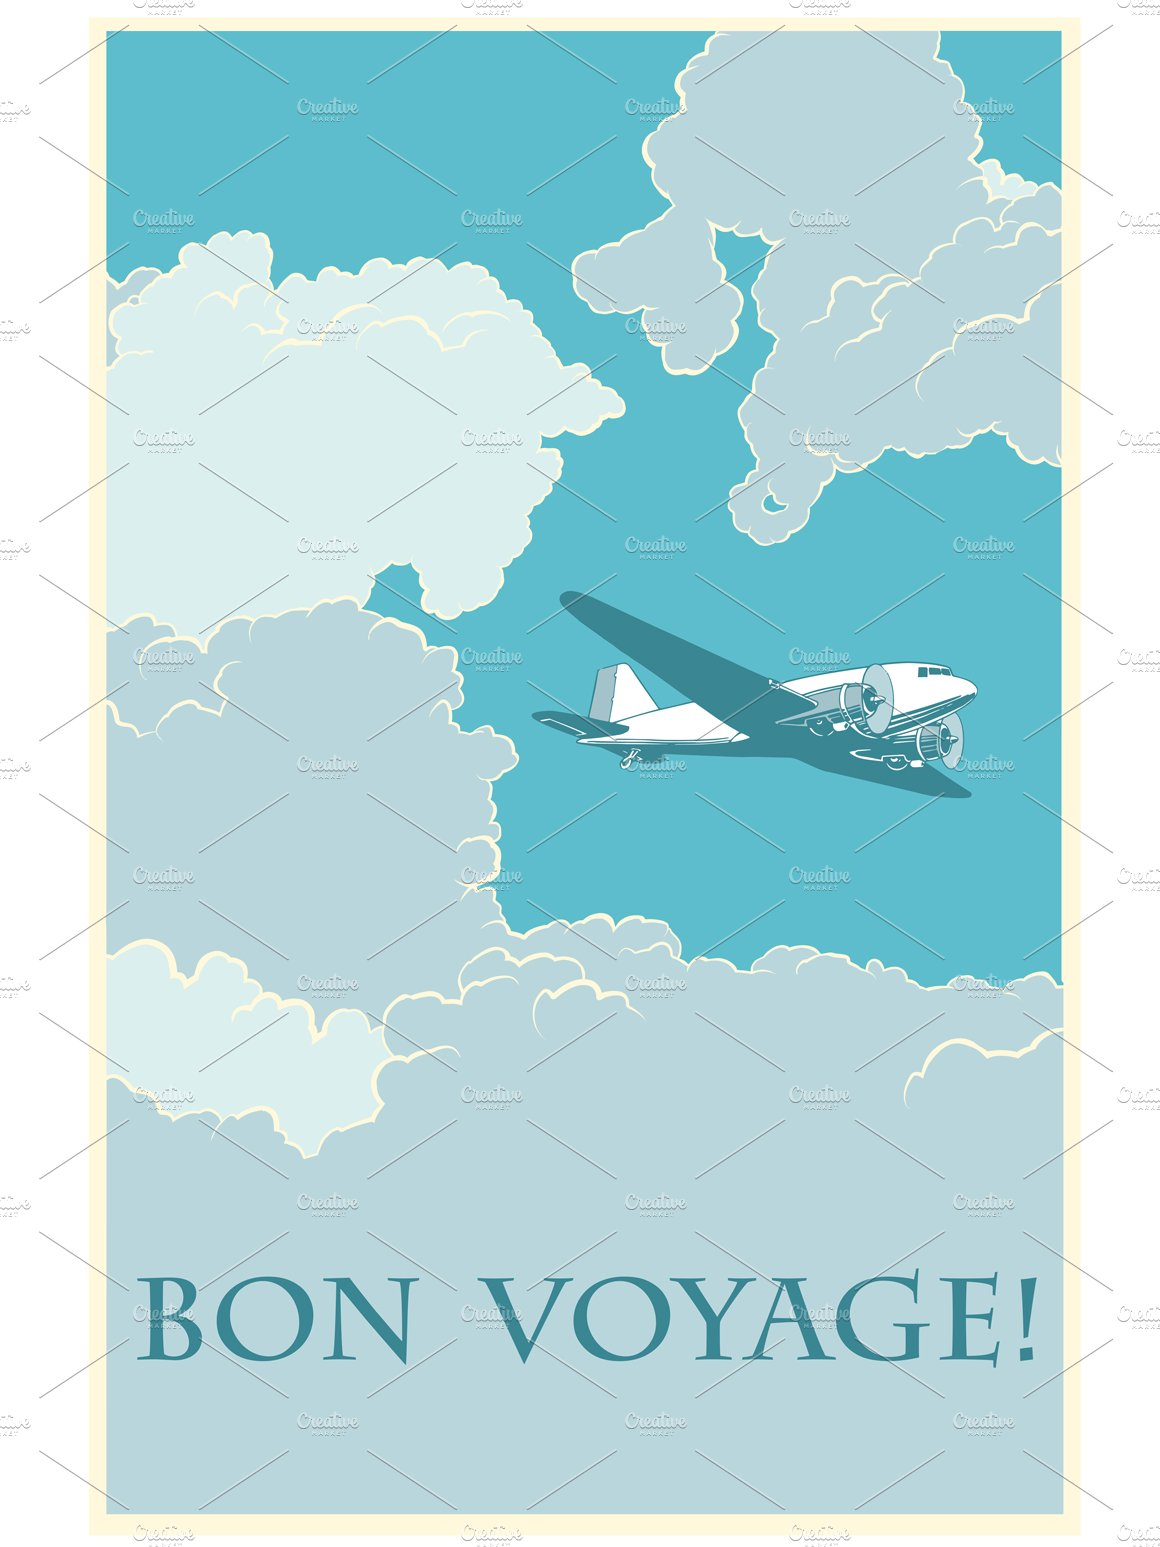 retro airplane bon voyage illustrations creative market. Black Bedroom Furniture Sets. Home Design Ideas